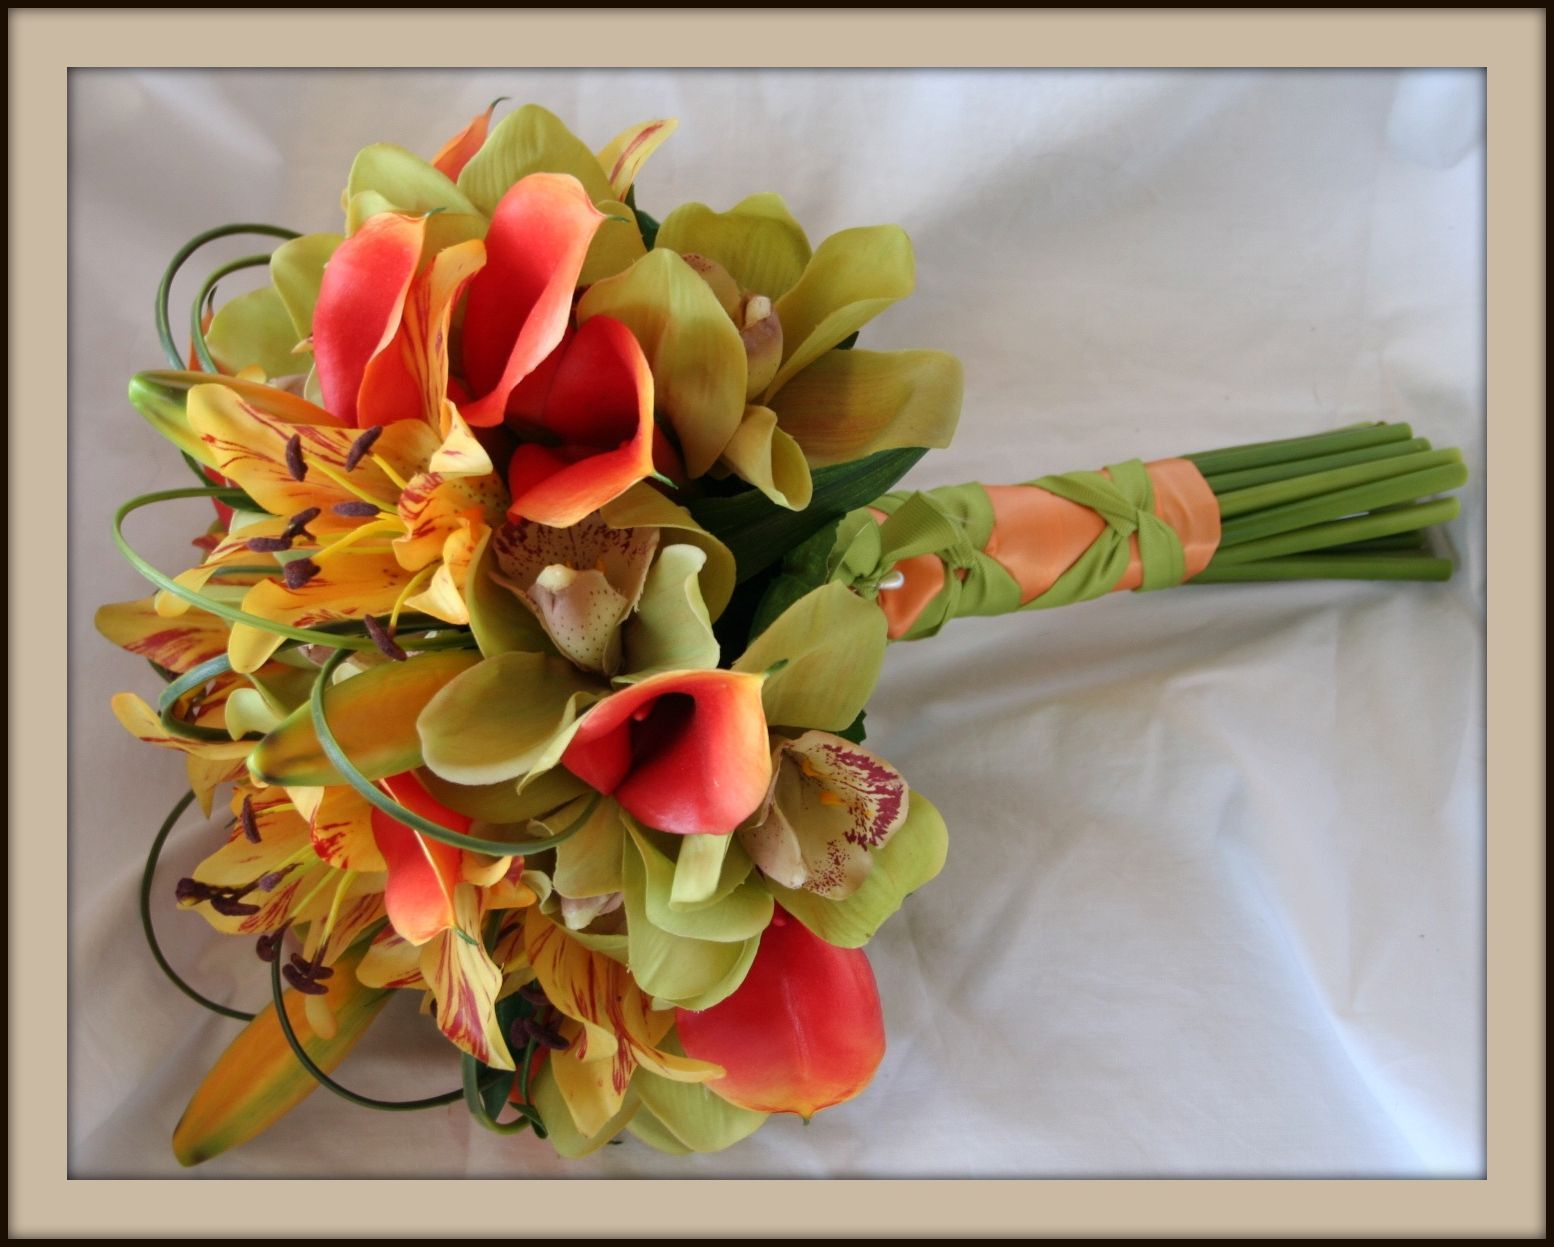 Flowers & Decor, yellow, orange, green, Bride Bouquets, Flowers, Bouquet, Tropical, Calla, Lilies, Grass, Orchids, Colors, Bright, Lily, Shavons wedding silks, Bear